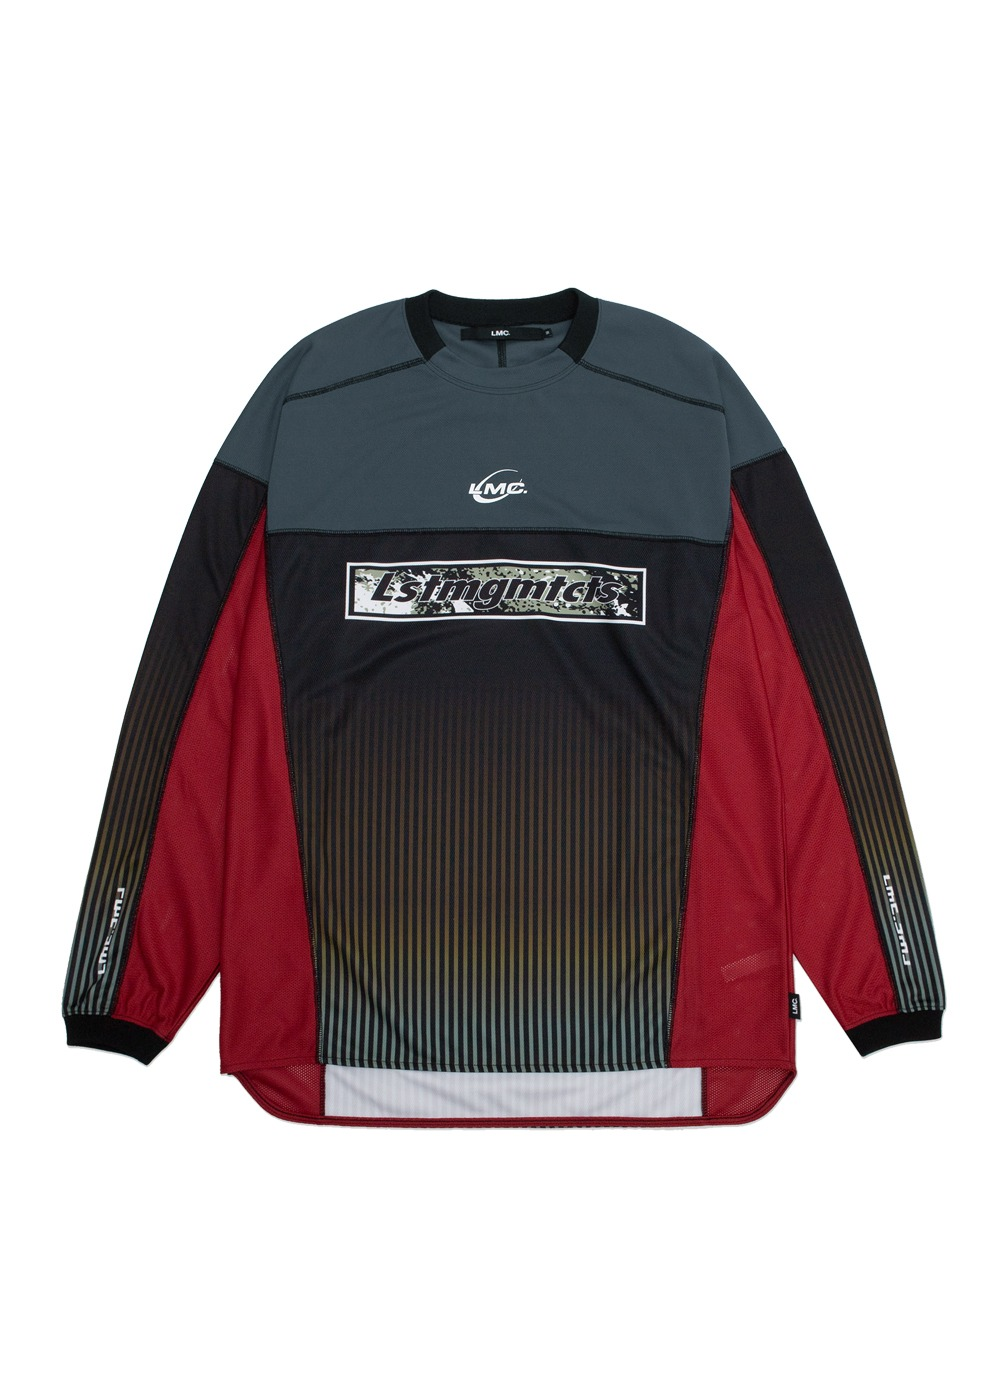 LMC GRADIENT LONG SLV JERSEY black